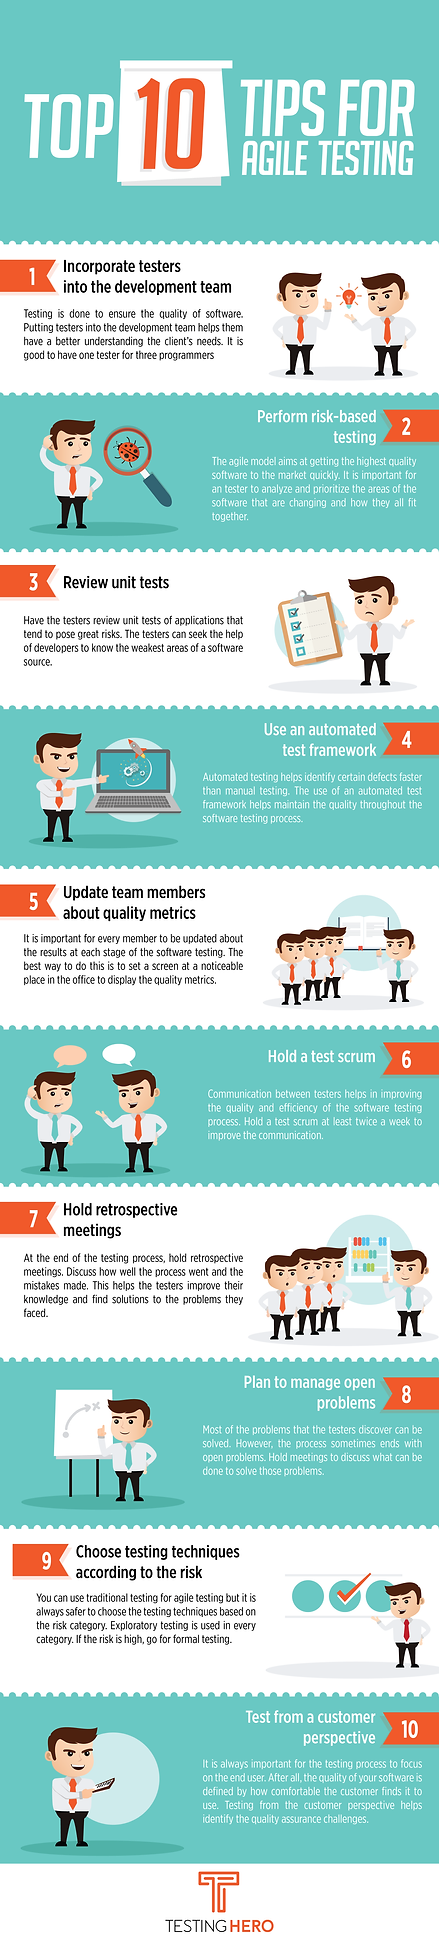 Top 10 Tips For Agile Testing By Testing Hero